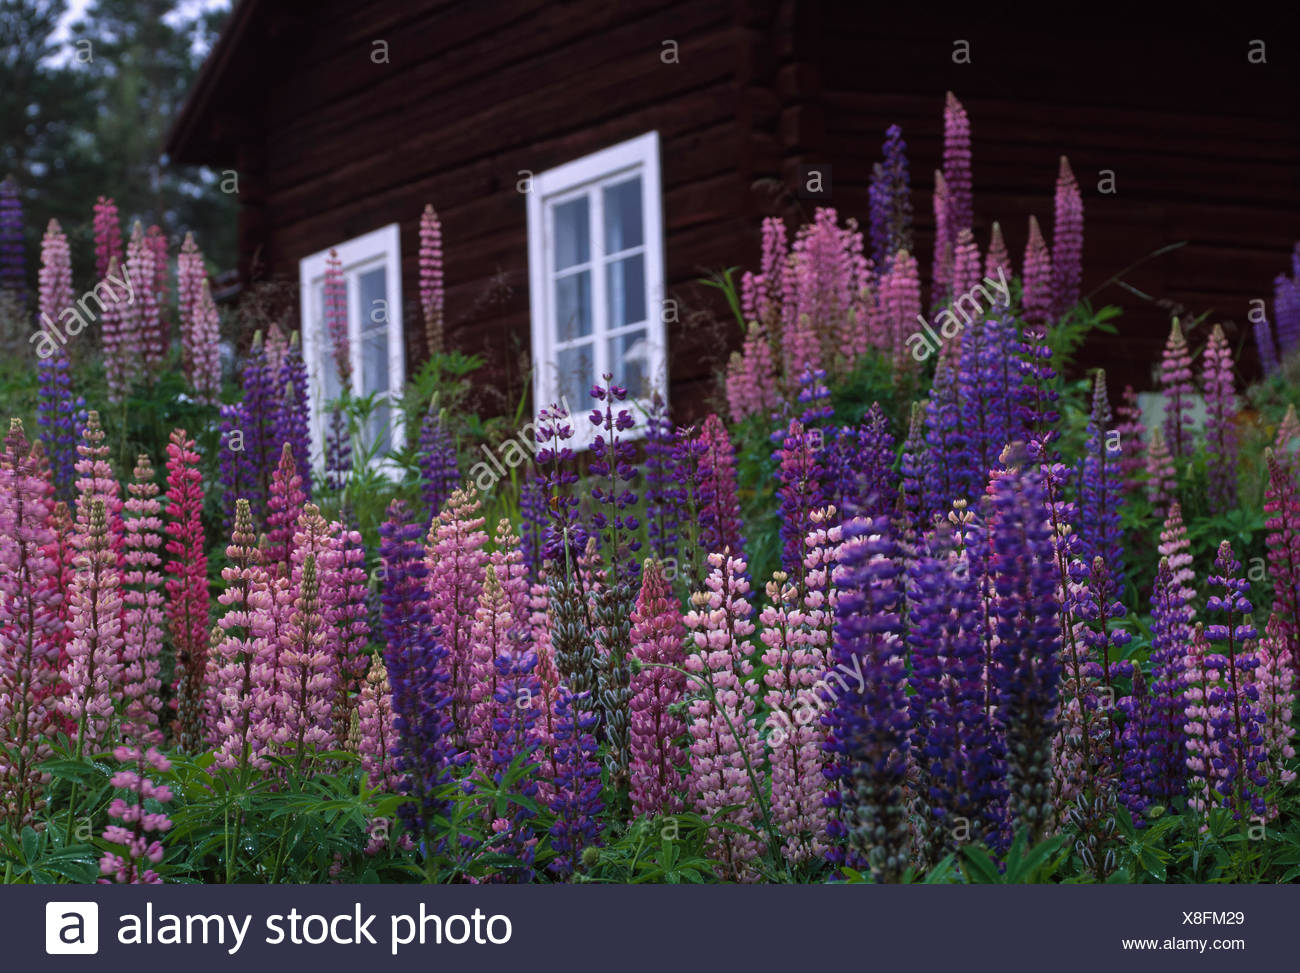 Sweden, Dalarna, Solleron, Picture of lupines Stock Photo